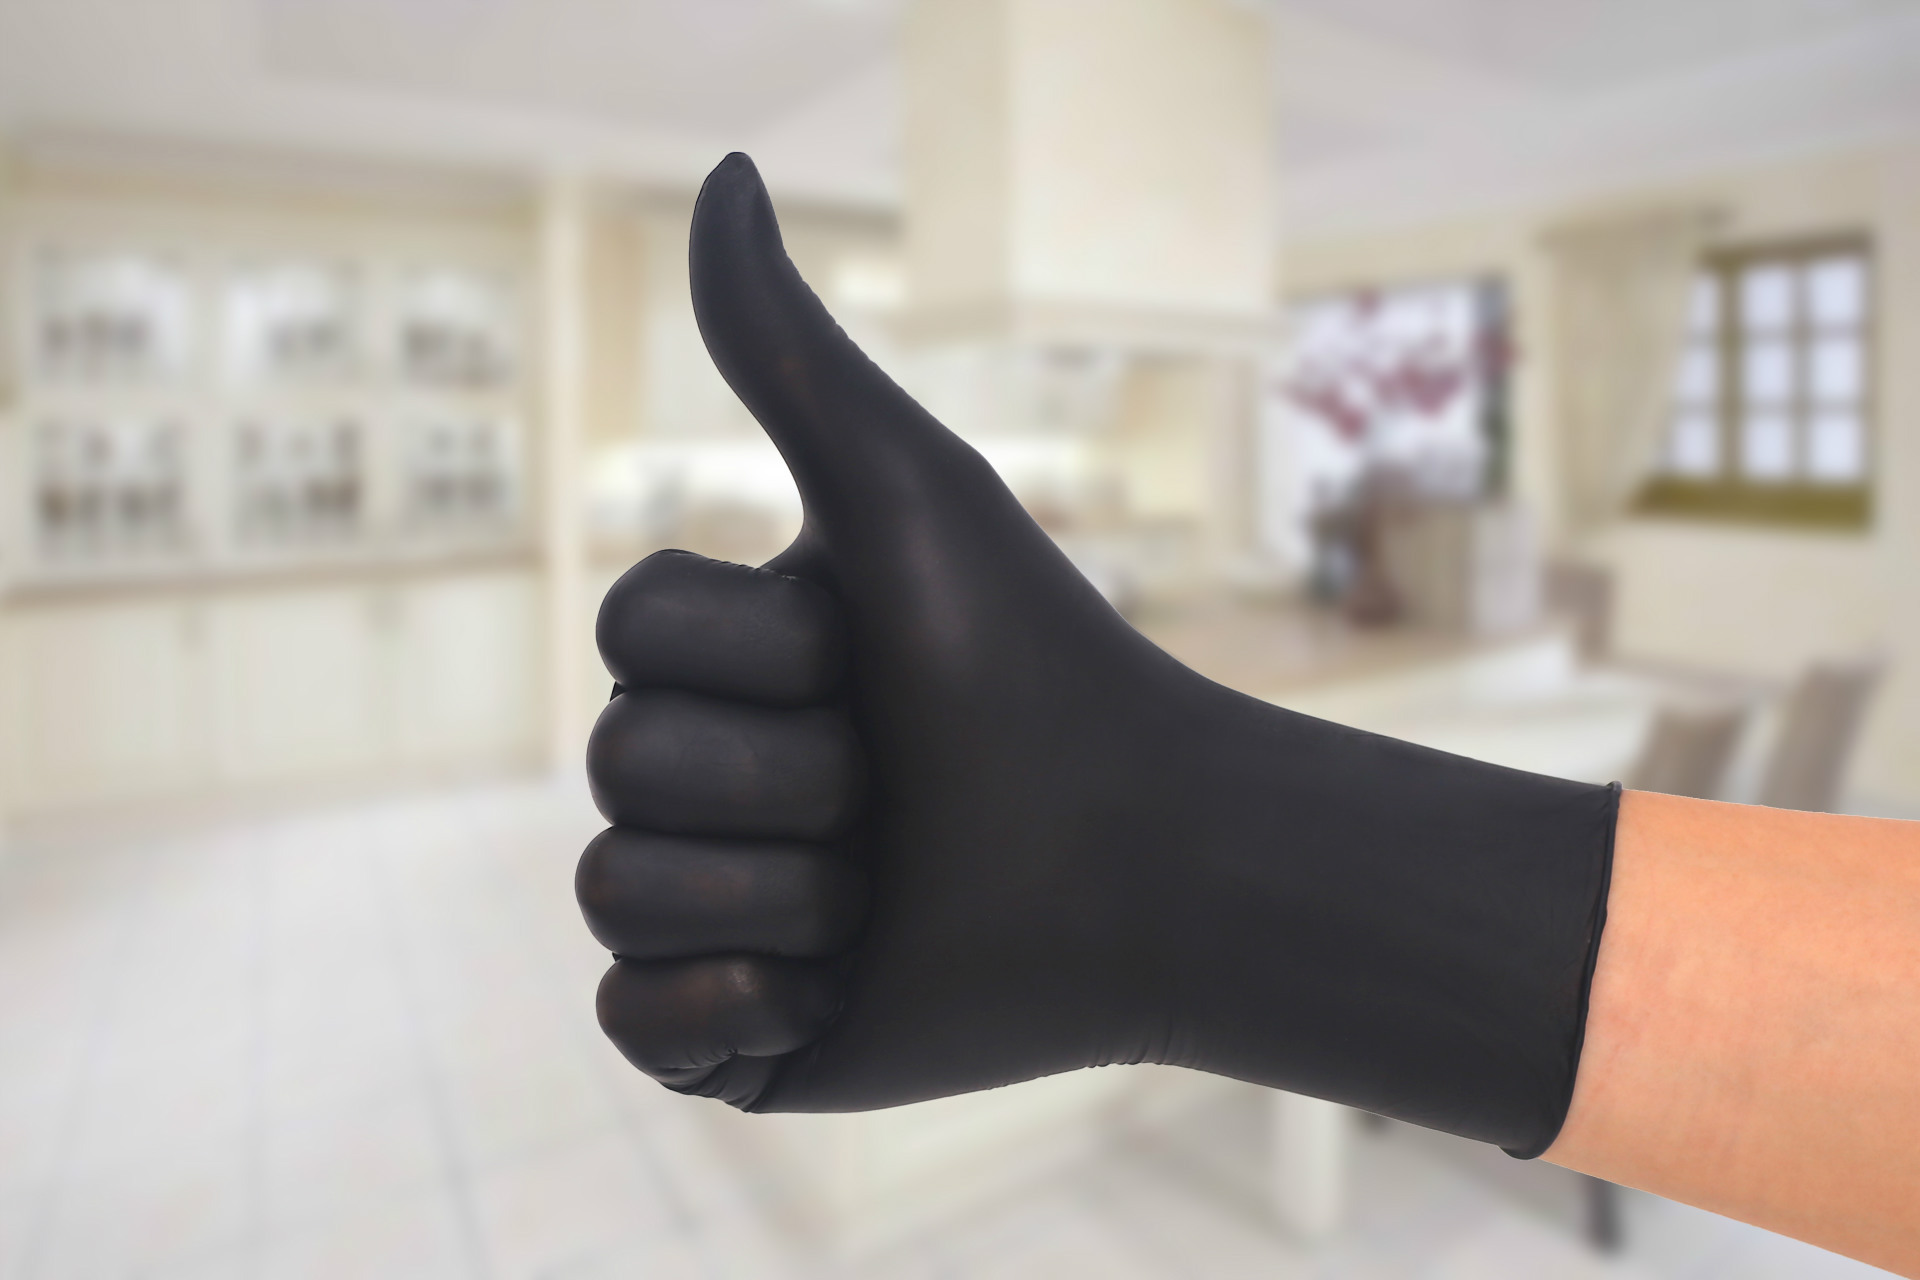 50 to100PCS Disposable Latex Gloves Latex And Anti Bacterial Medical Gloves for Virus and Flu Protection 9